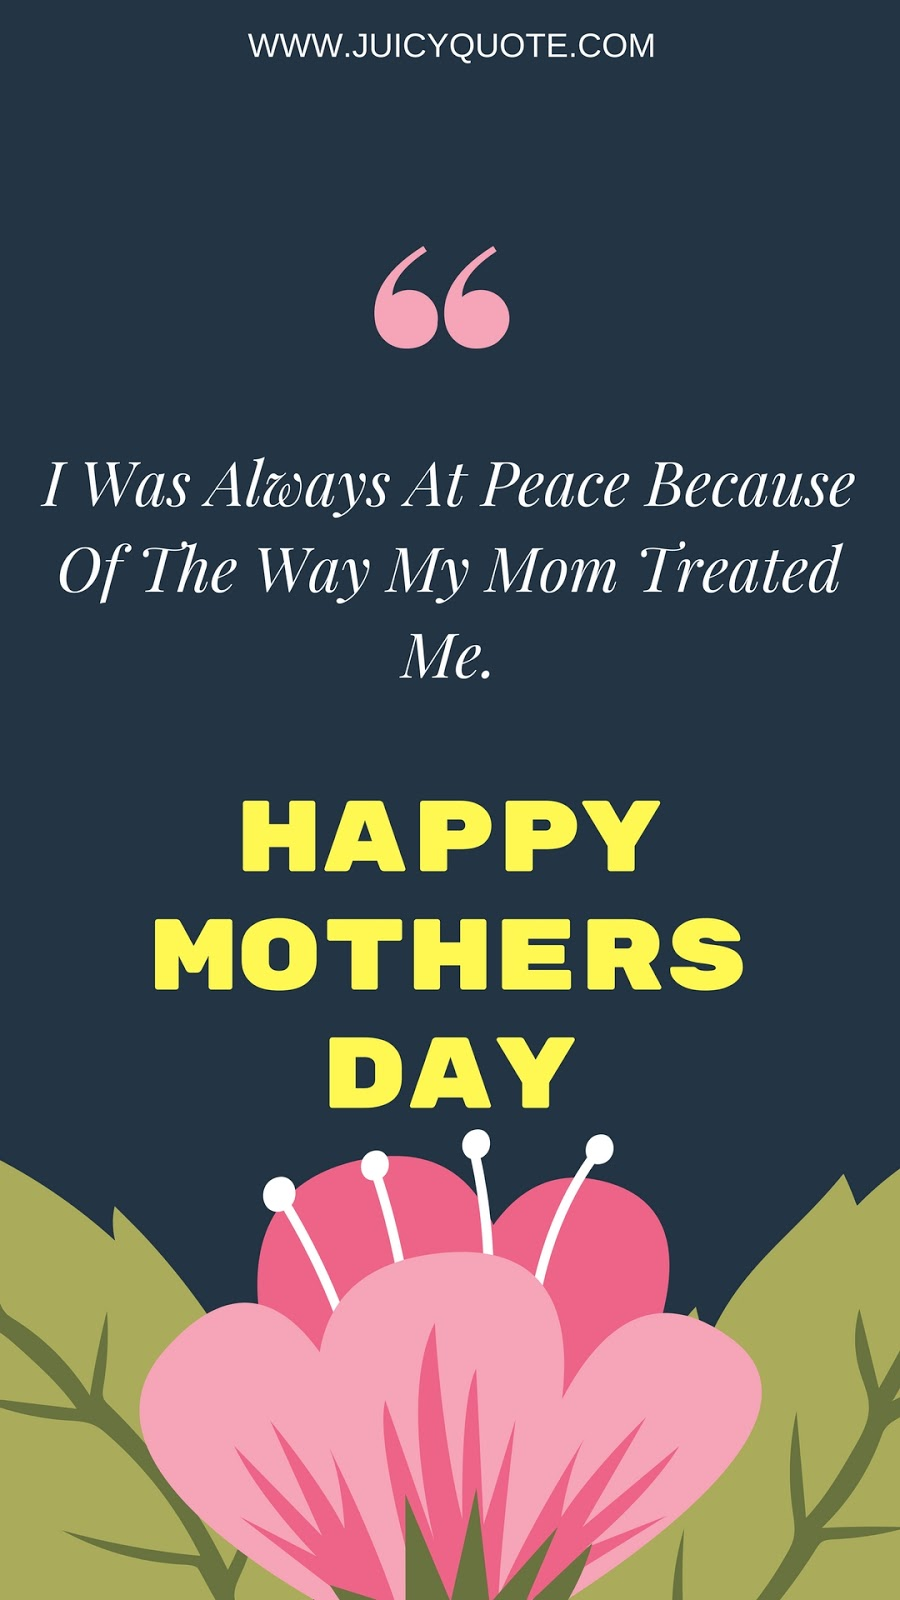 Happy mothers day status for watsappfacebook and instagram juicy offer these cute and lovely mothers day messages quotes wishes greetings short lyrics with your companions relative relatives m4hsunfo